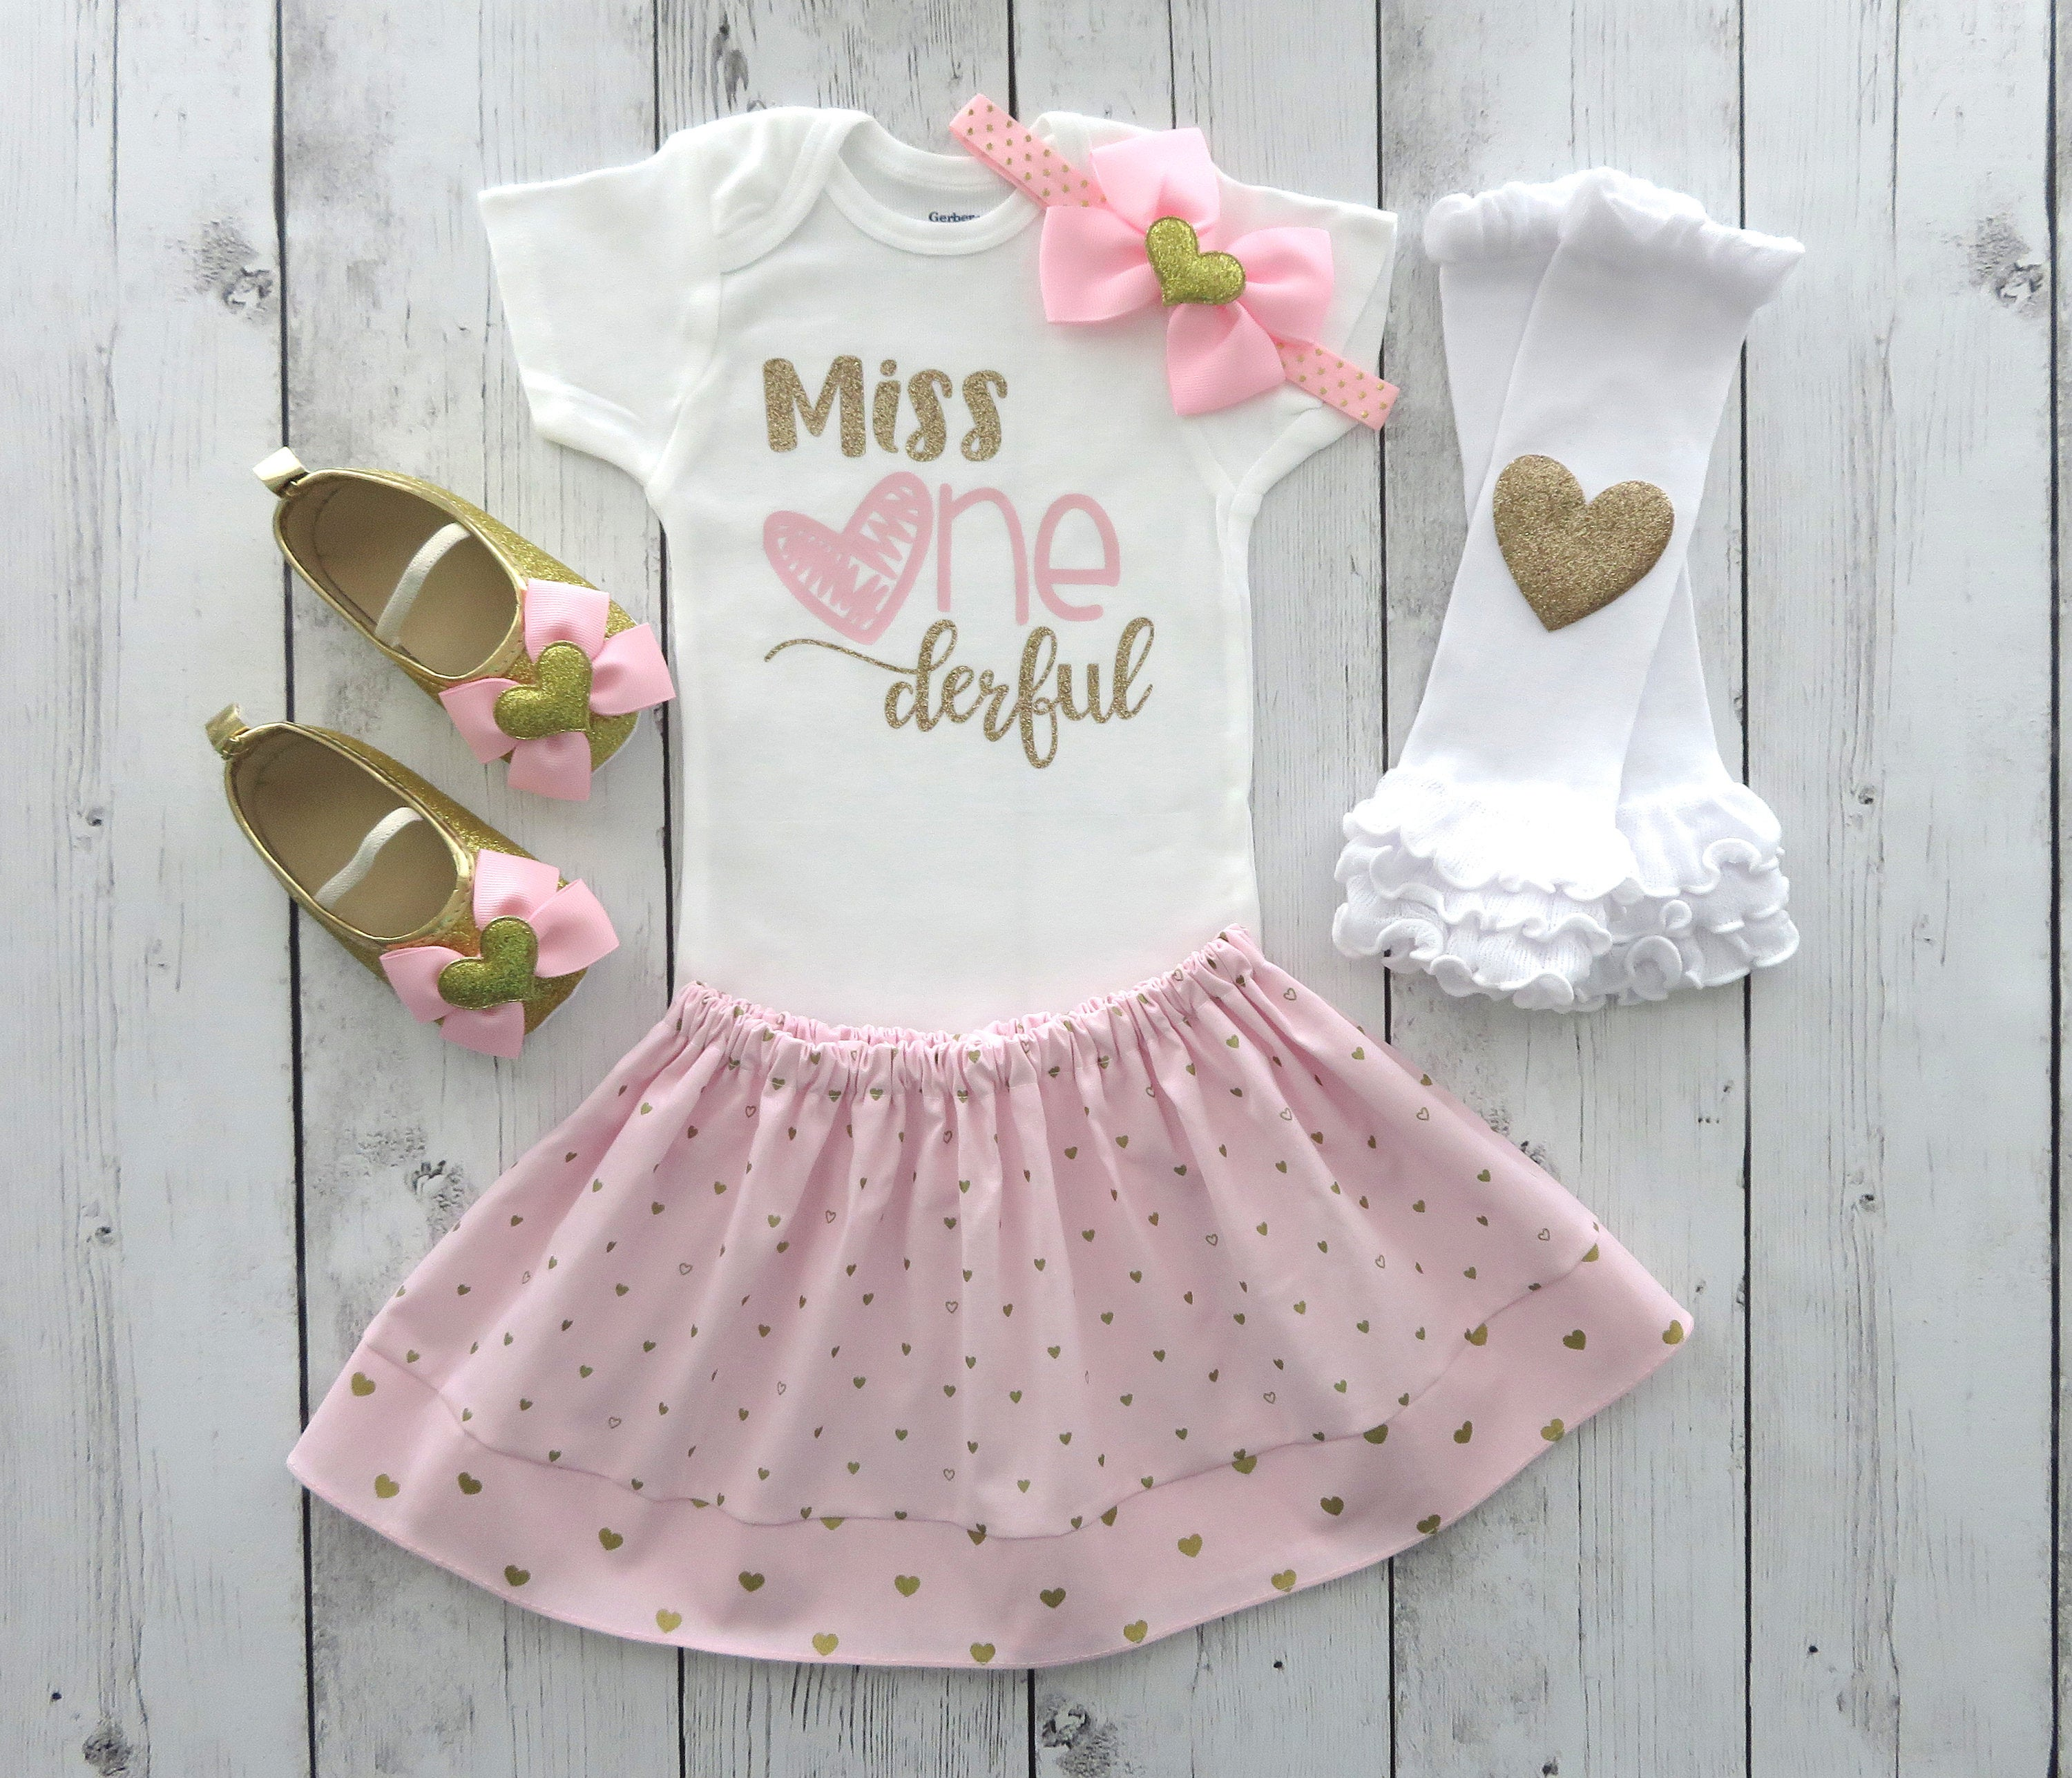 Miss Onederful First Birthday Outfit in pink and gold hearts - first birthday outfit pink and gold, hearts birthday dress, gold shoes